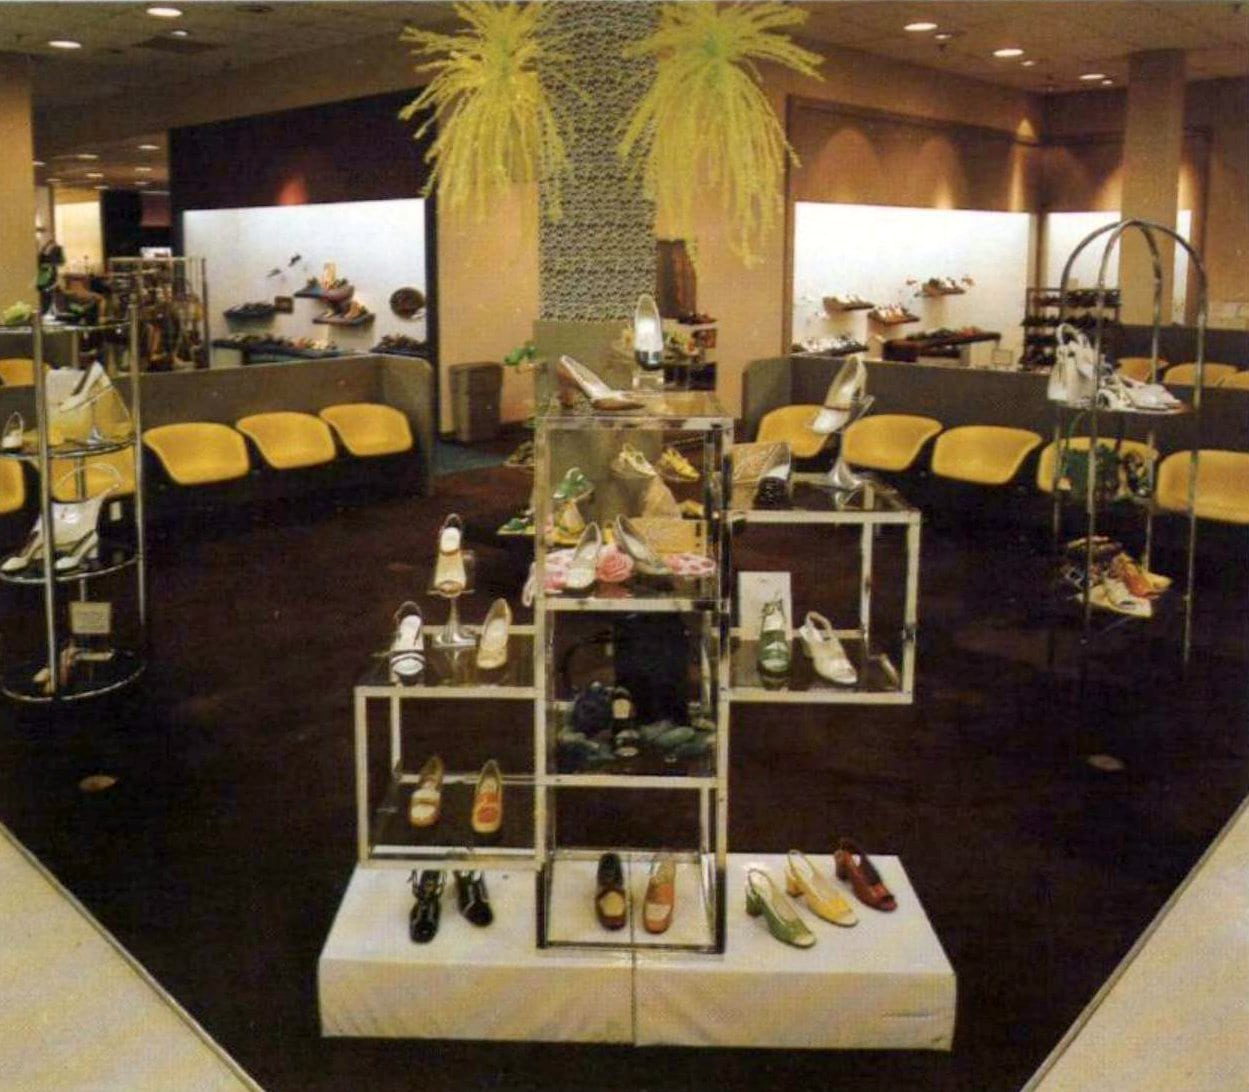 Retro 70s shoe store displays and seating (1974)